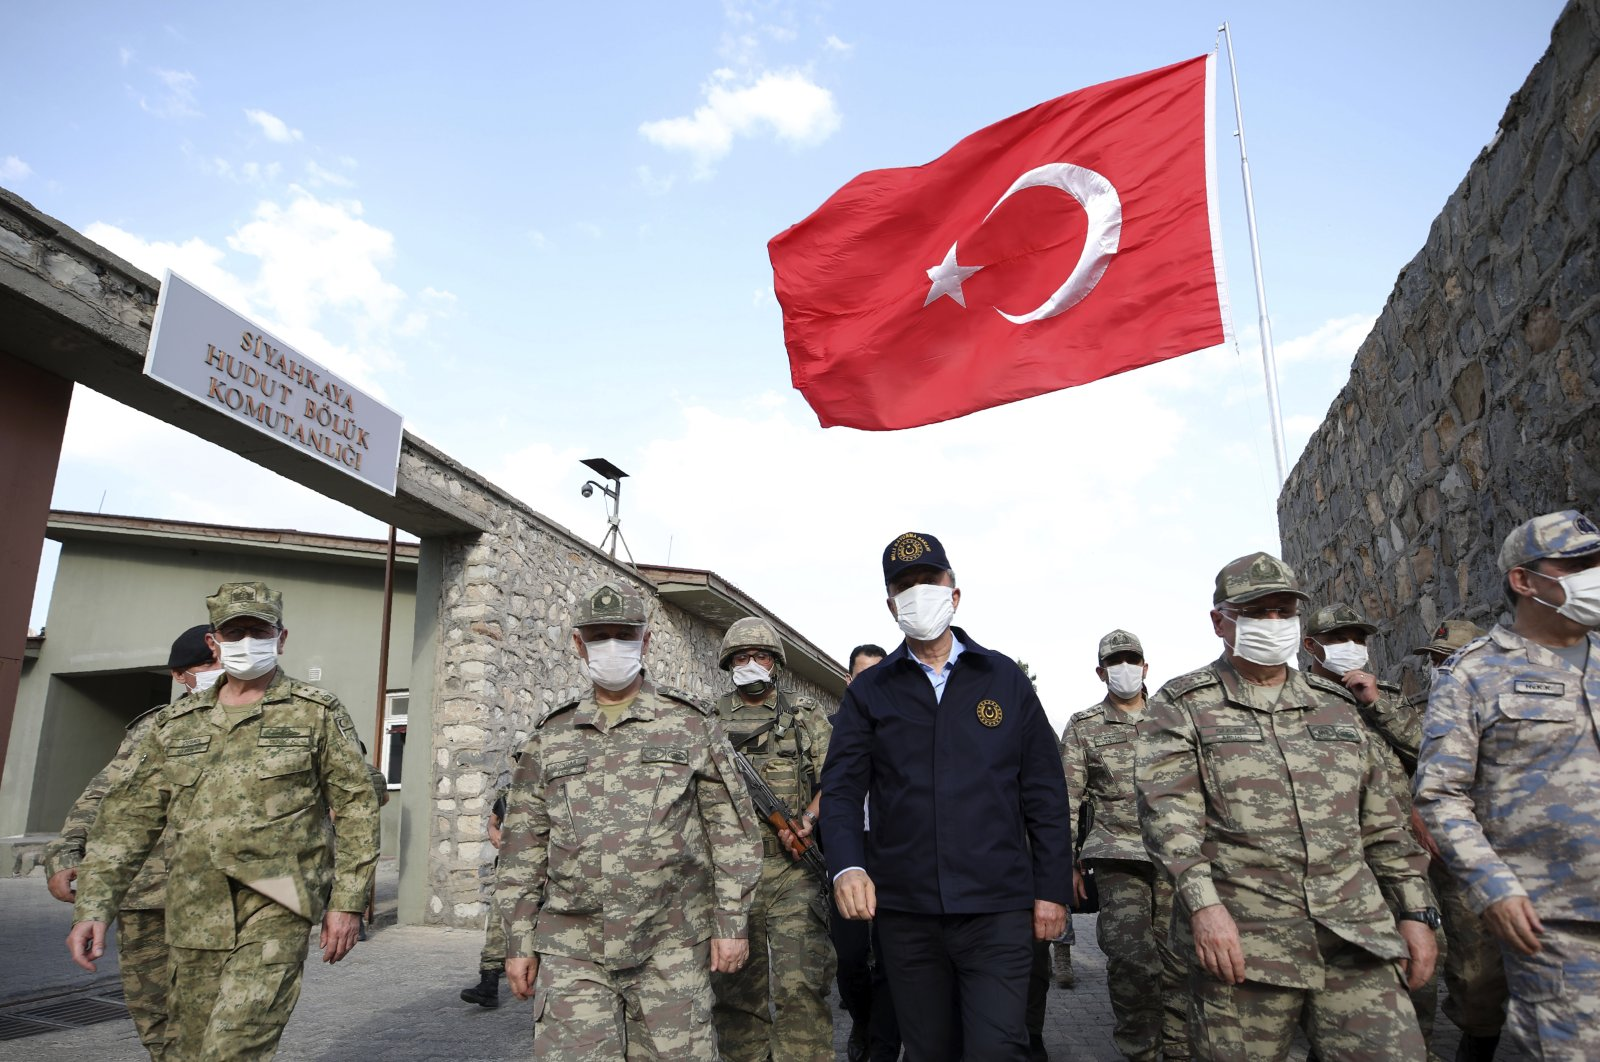 Turkish Defense Minister Hulusi Akar (C) visits Turkish troops at the border with Iraq, in Hakkari, Turkey, June 19, 2020. (COURTESY OF TURKISH DEFENSE MINISTRY)